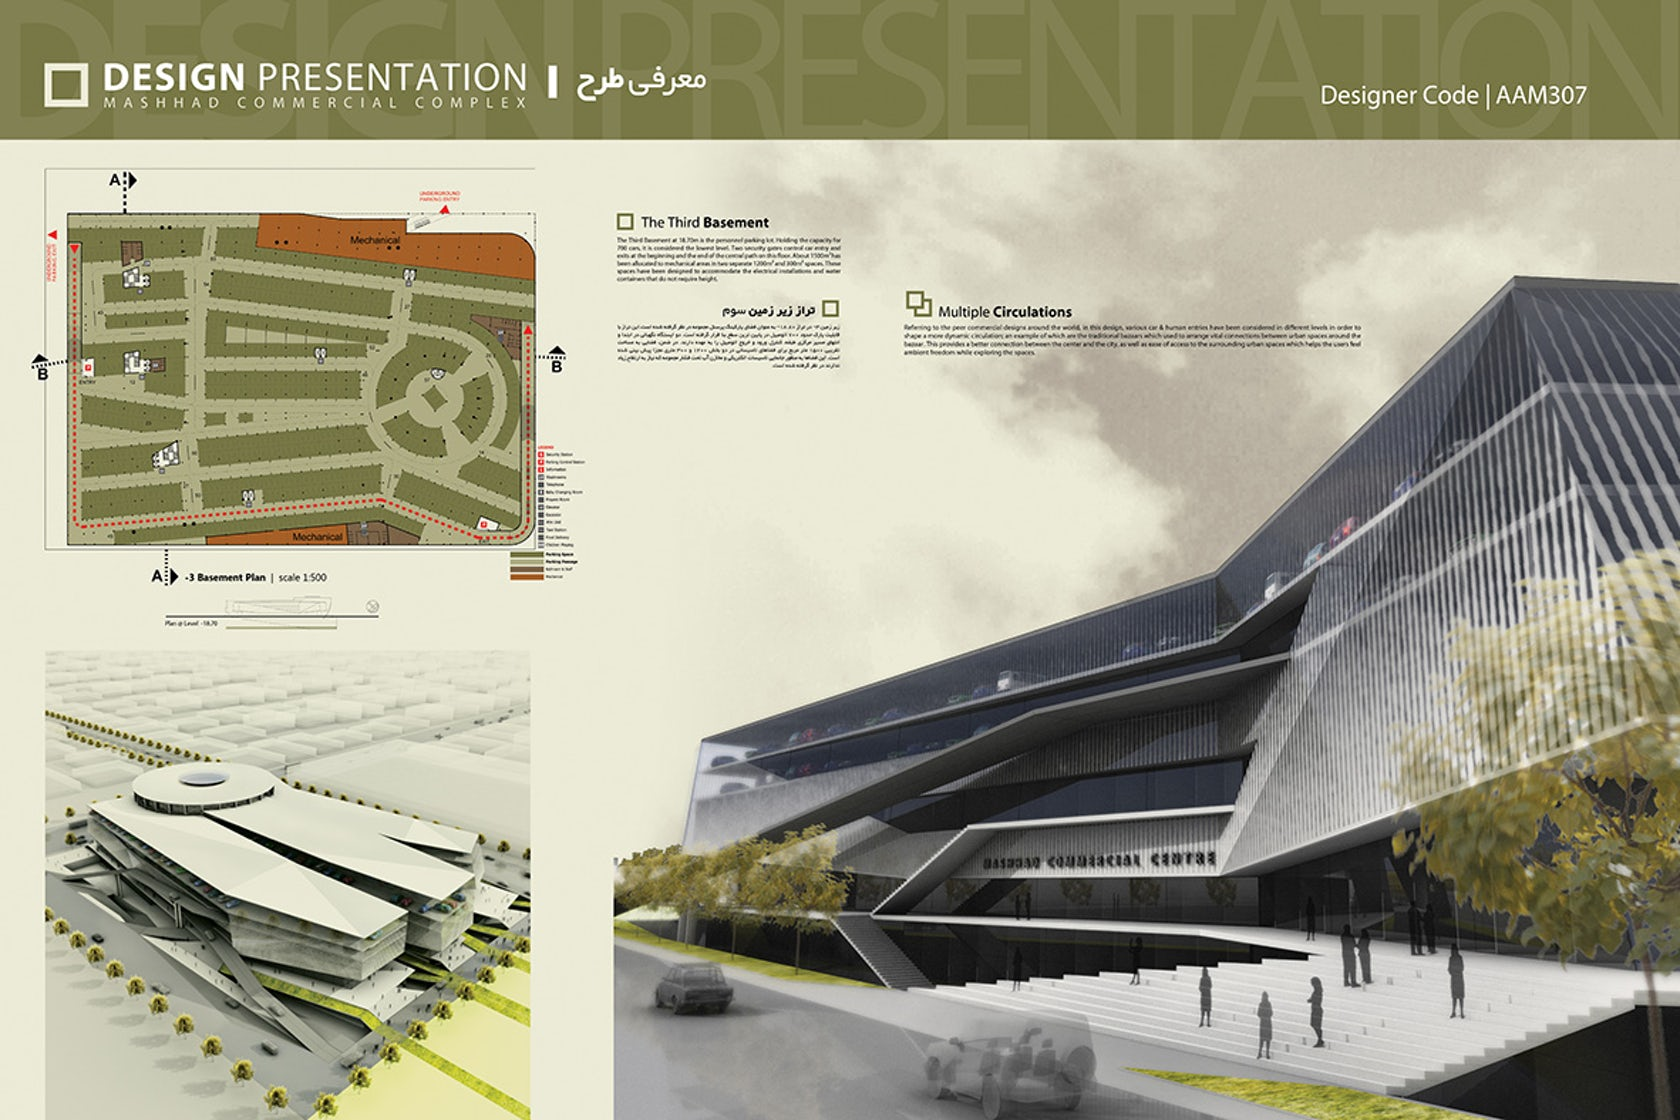 Mashhad commercial complex competition  4th place on Architizer